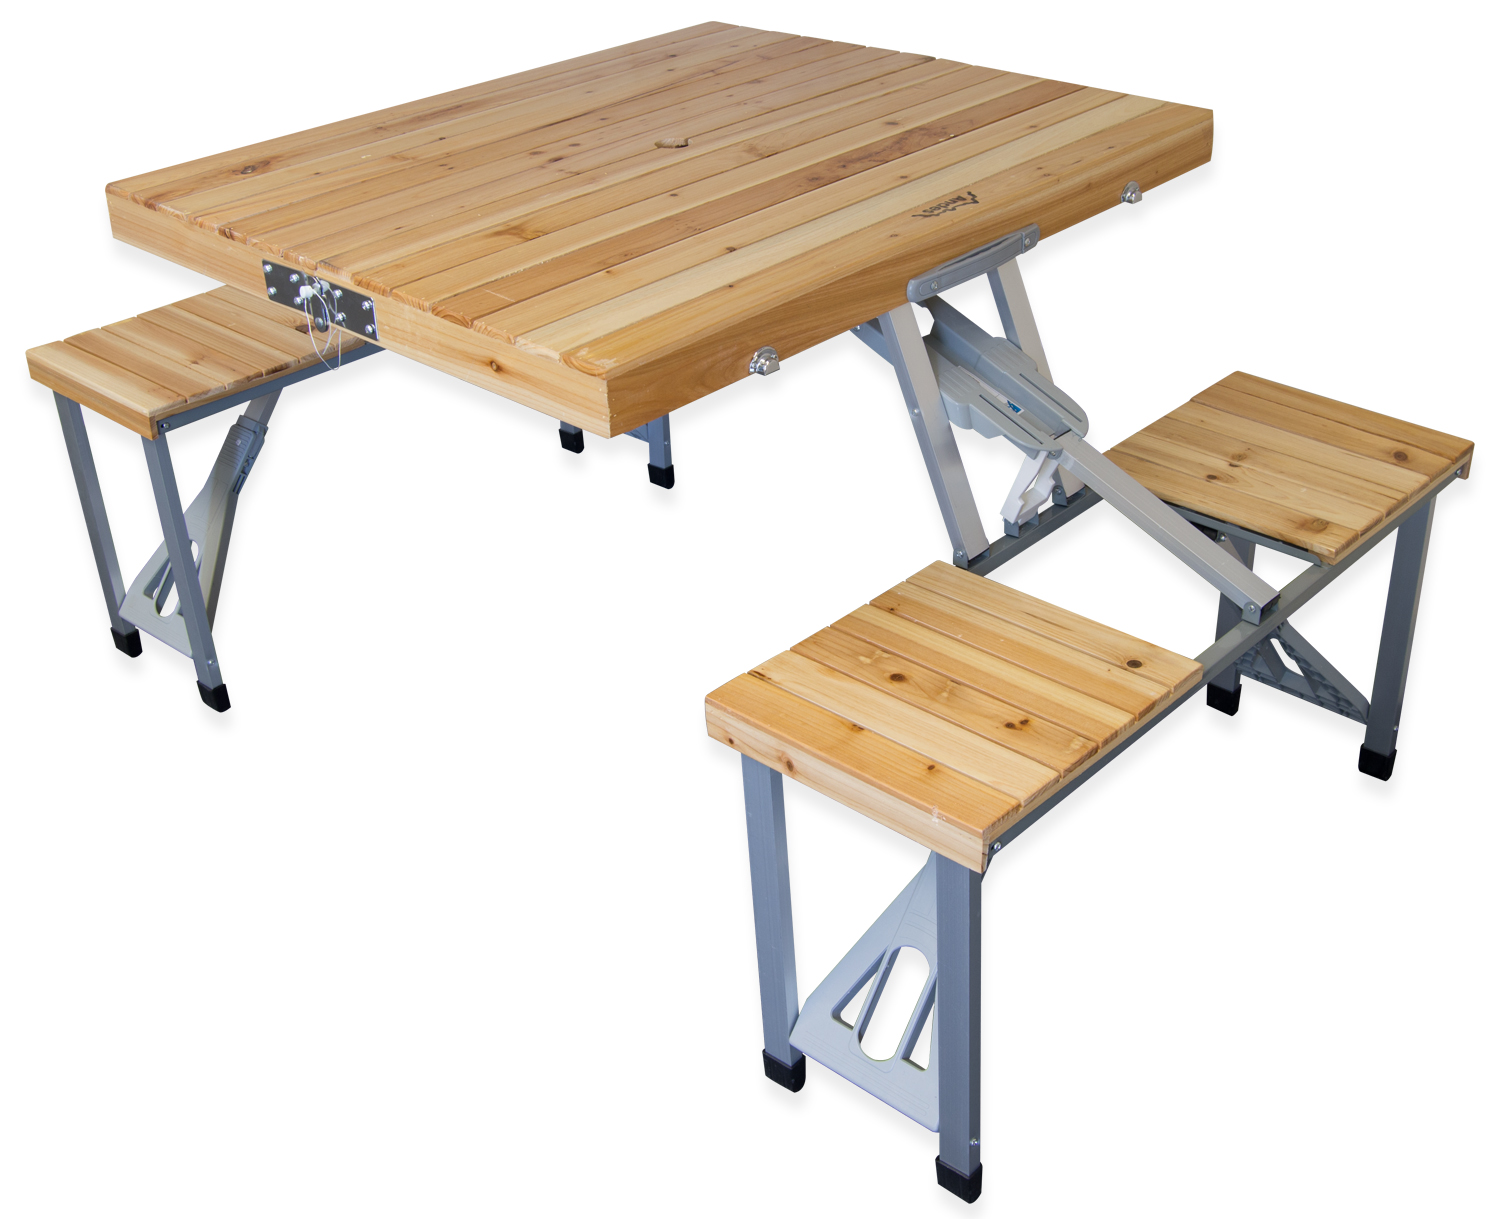 Wooden Folding Table ~ Andes folding wooden camping table outdoor value